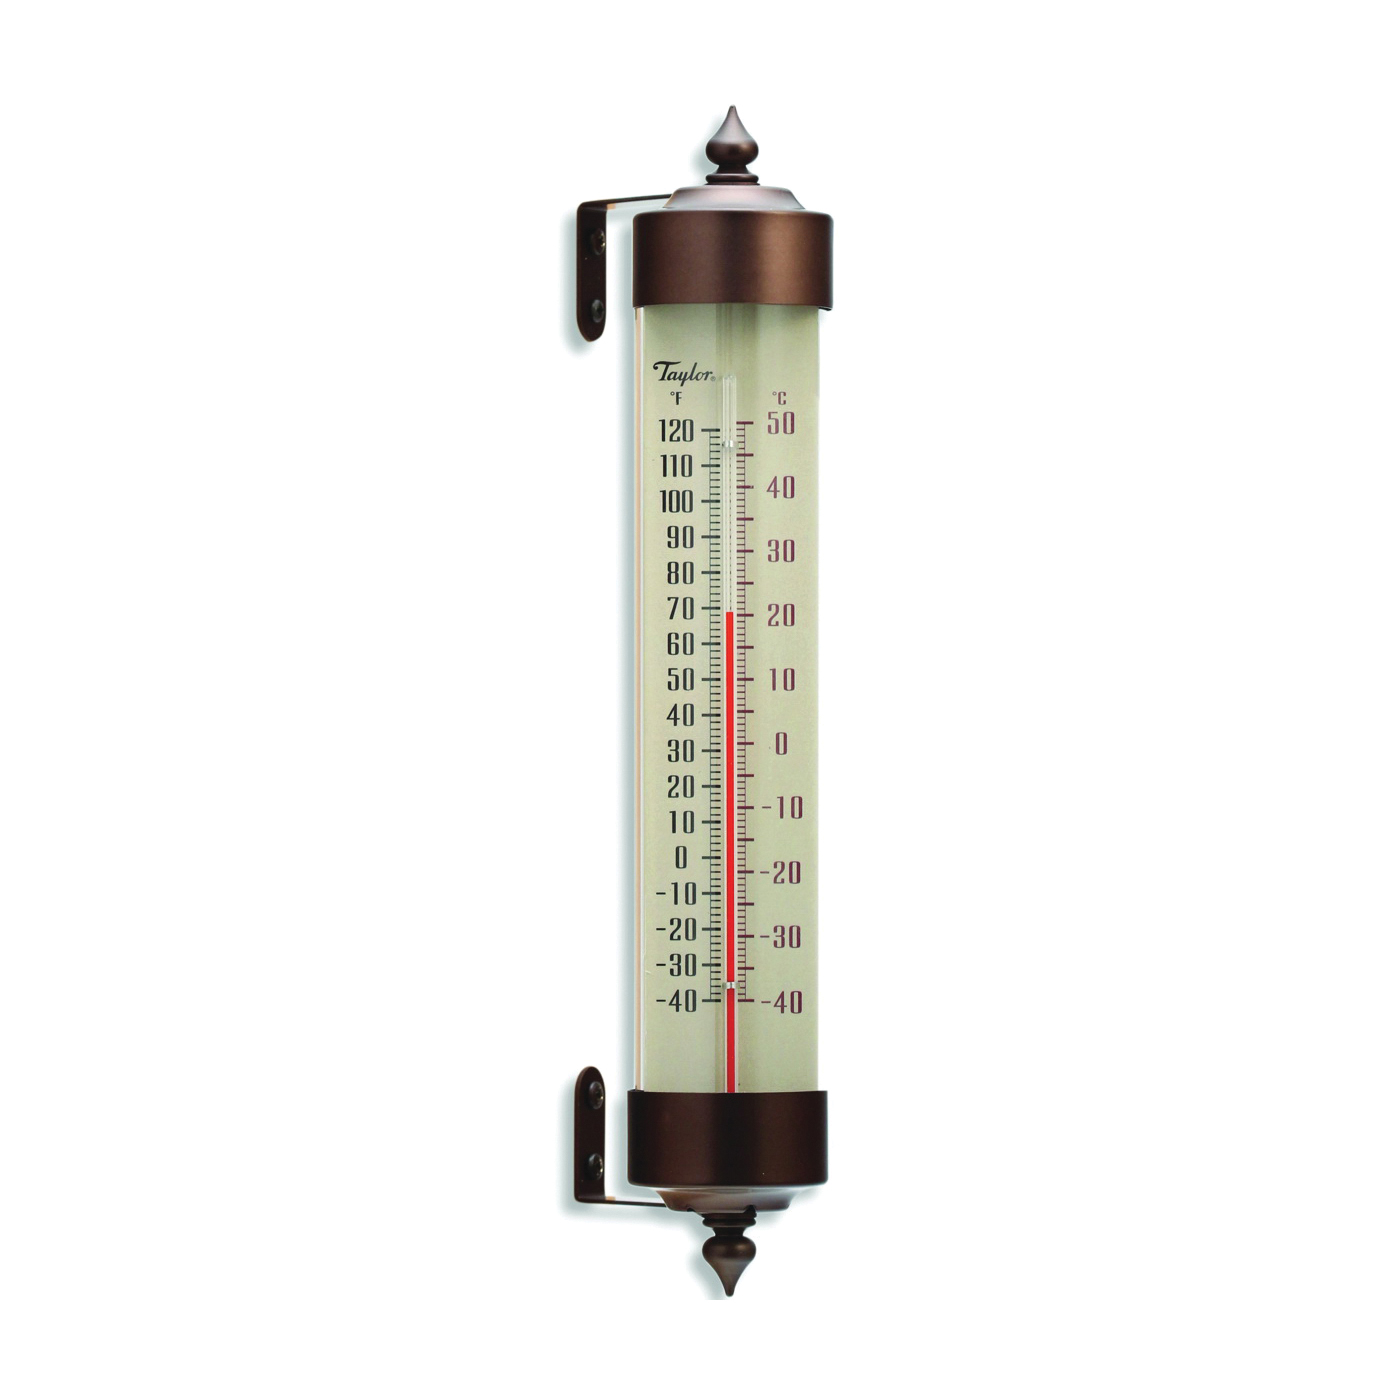 Picture of Taylor 482BZN Thermometer, -40 to 120 deg F